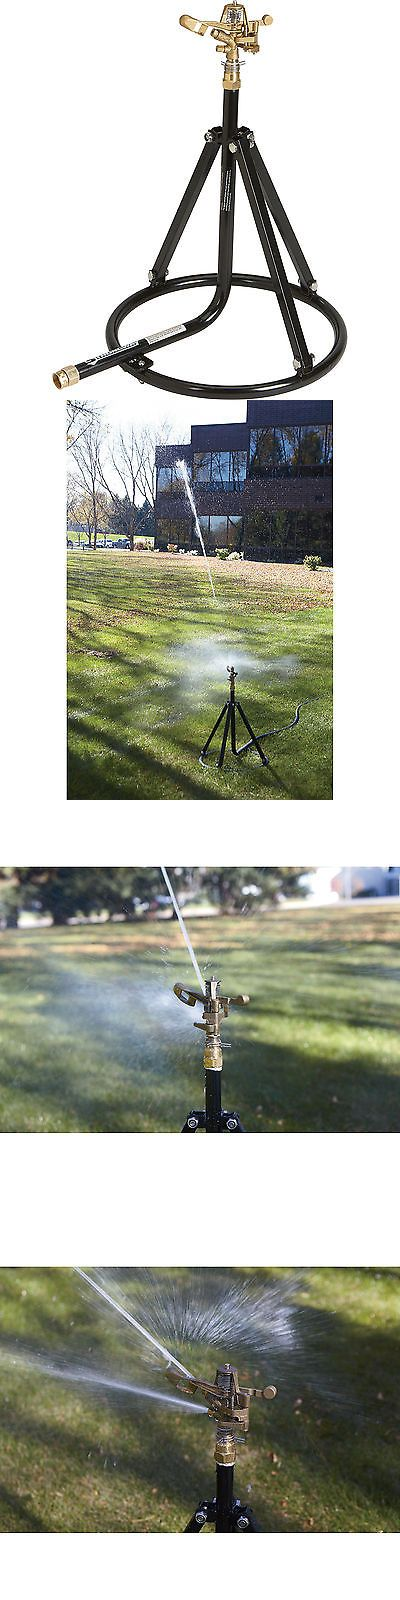 Lawn Sprinklers 20542: Strongway Tripod Sprinkler Round Base 3 4In Brass Head 2 Nozzles -> BUY IT NOW ONLY: $49.99 on eBay!